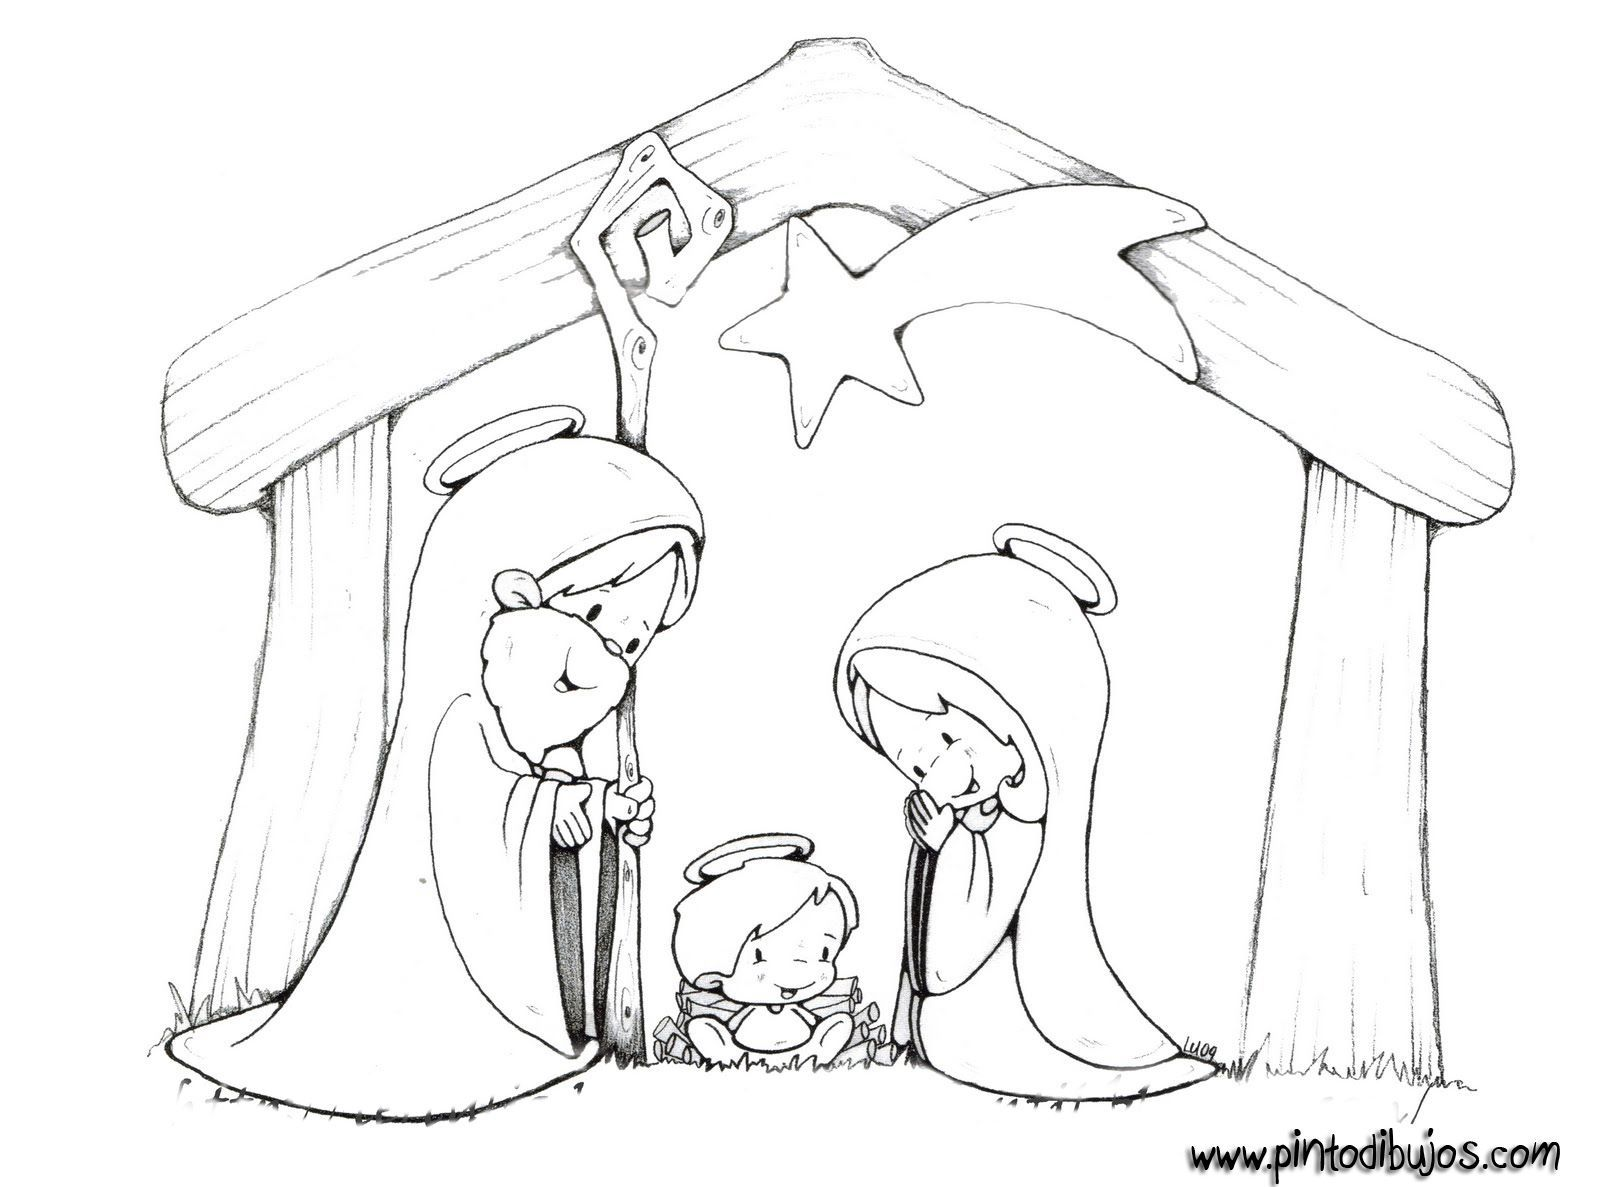 Nativity Scene Coloring 18 Lot More Coloring Pages On Web